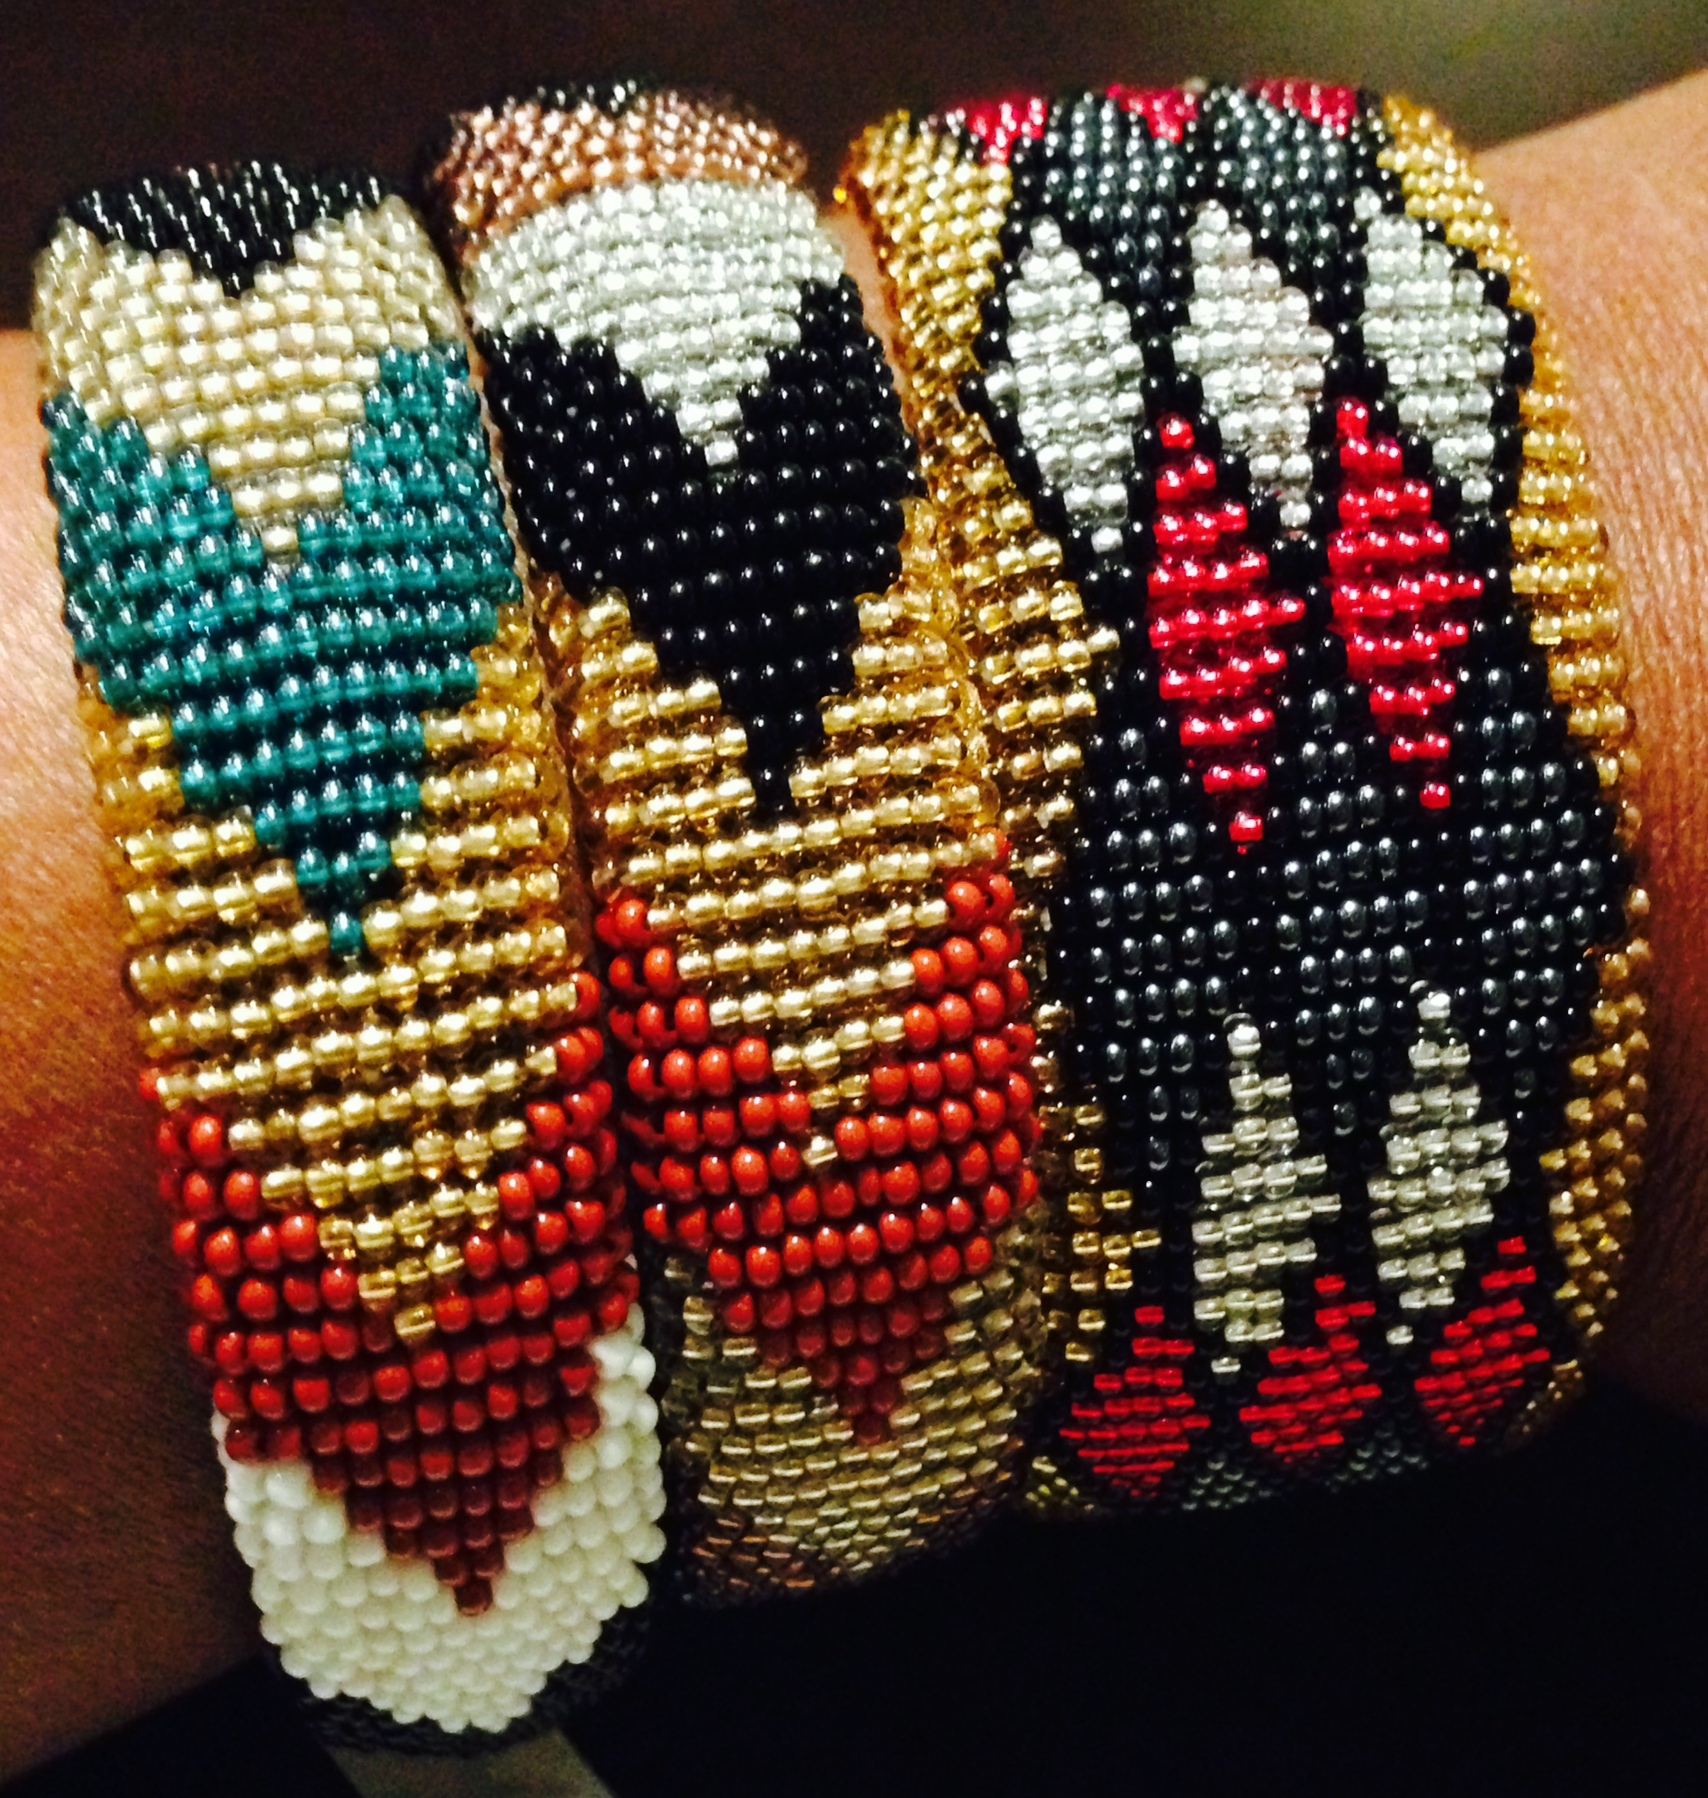 Each tiny little bead is individually strung by Genet  in precise patterns.